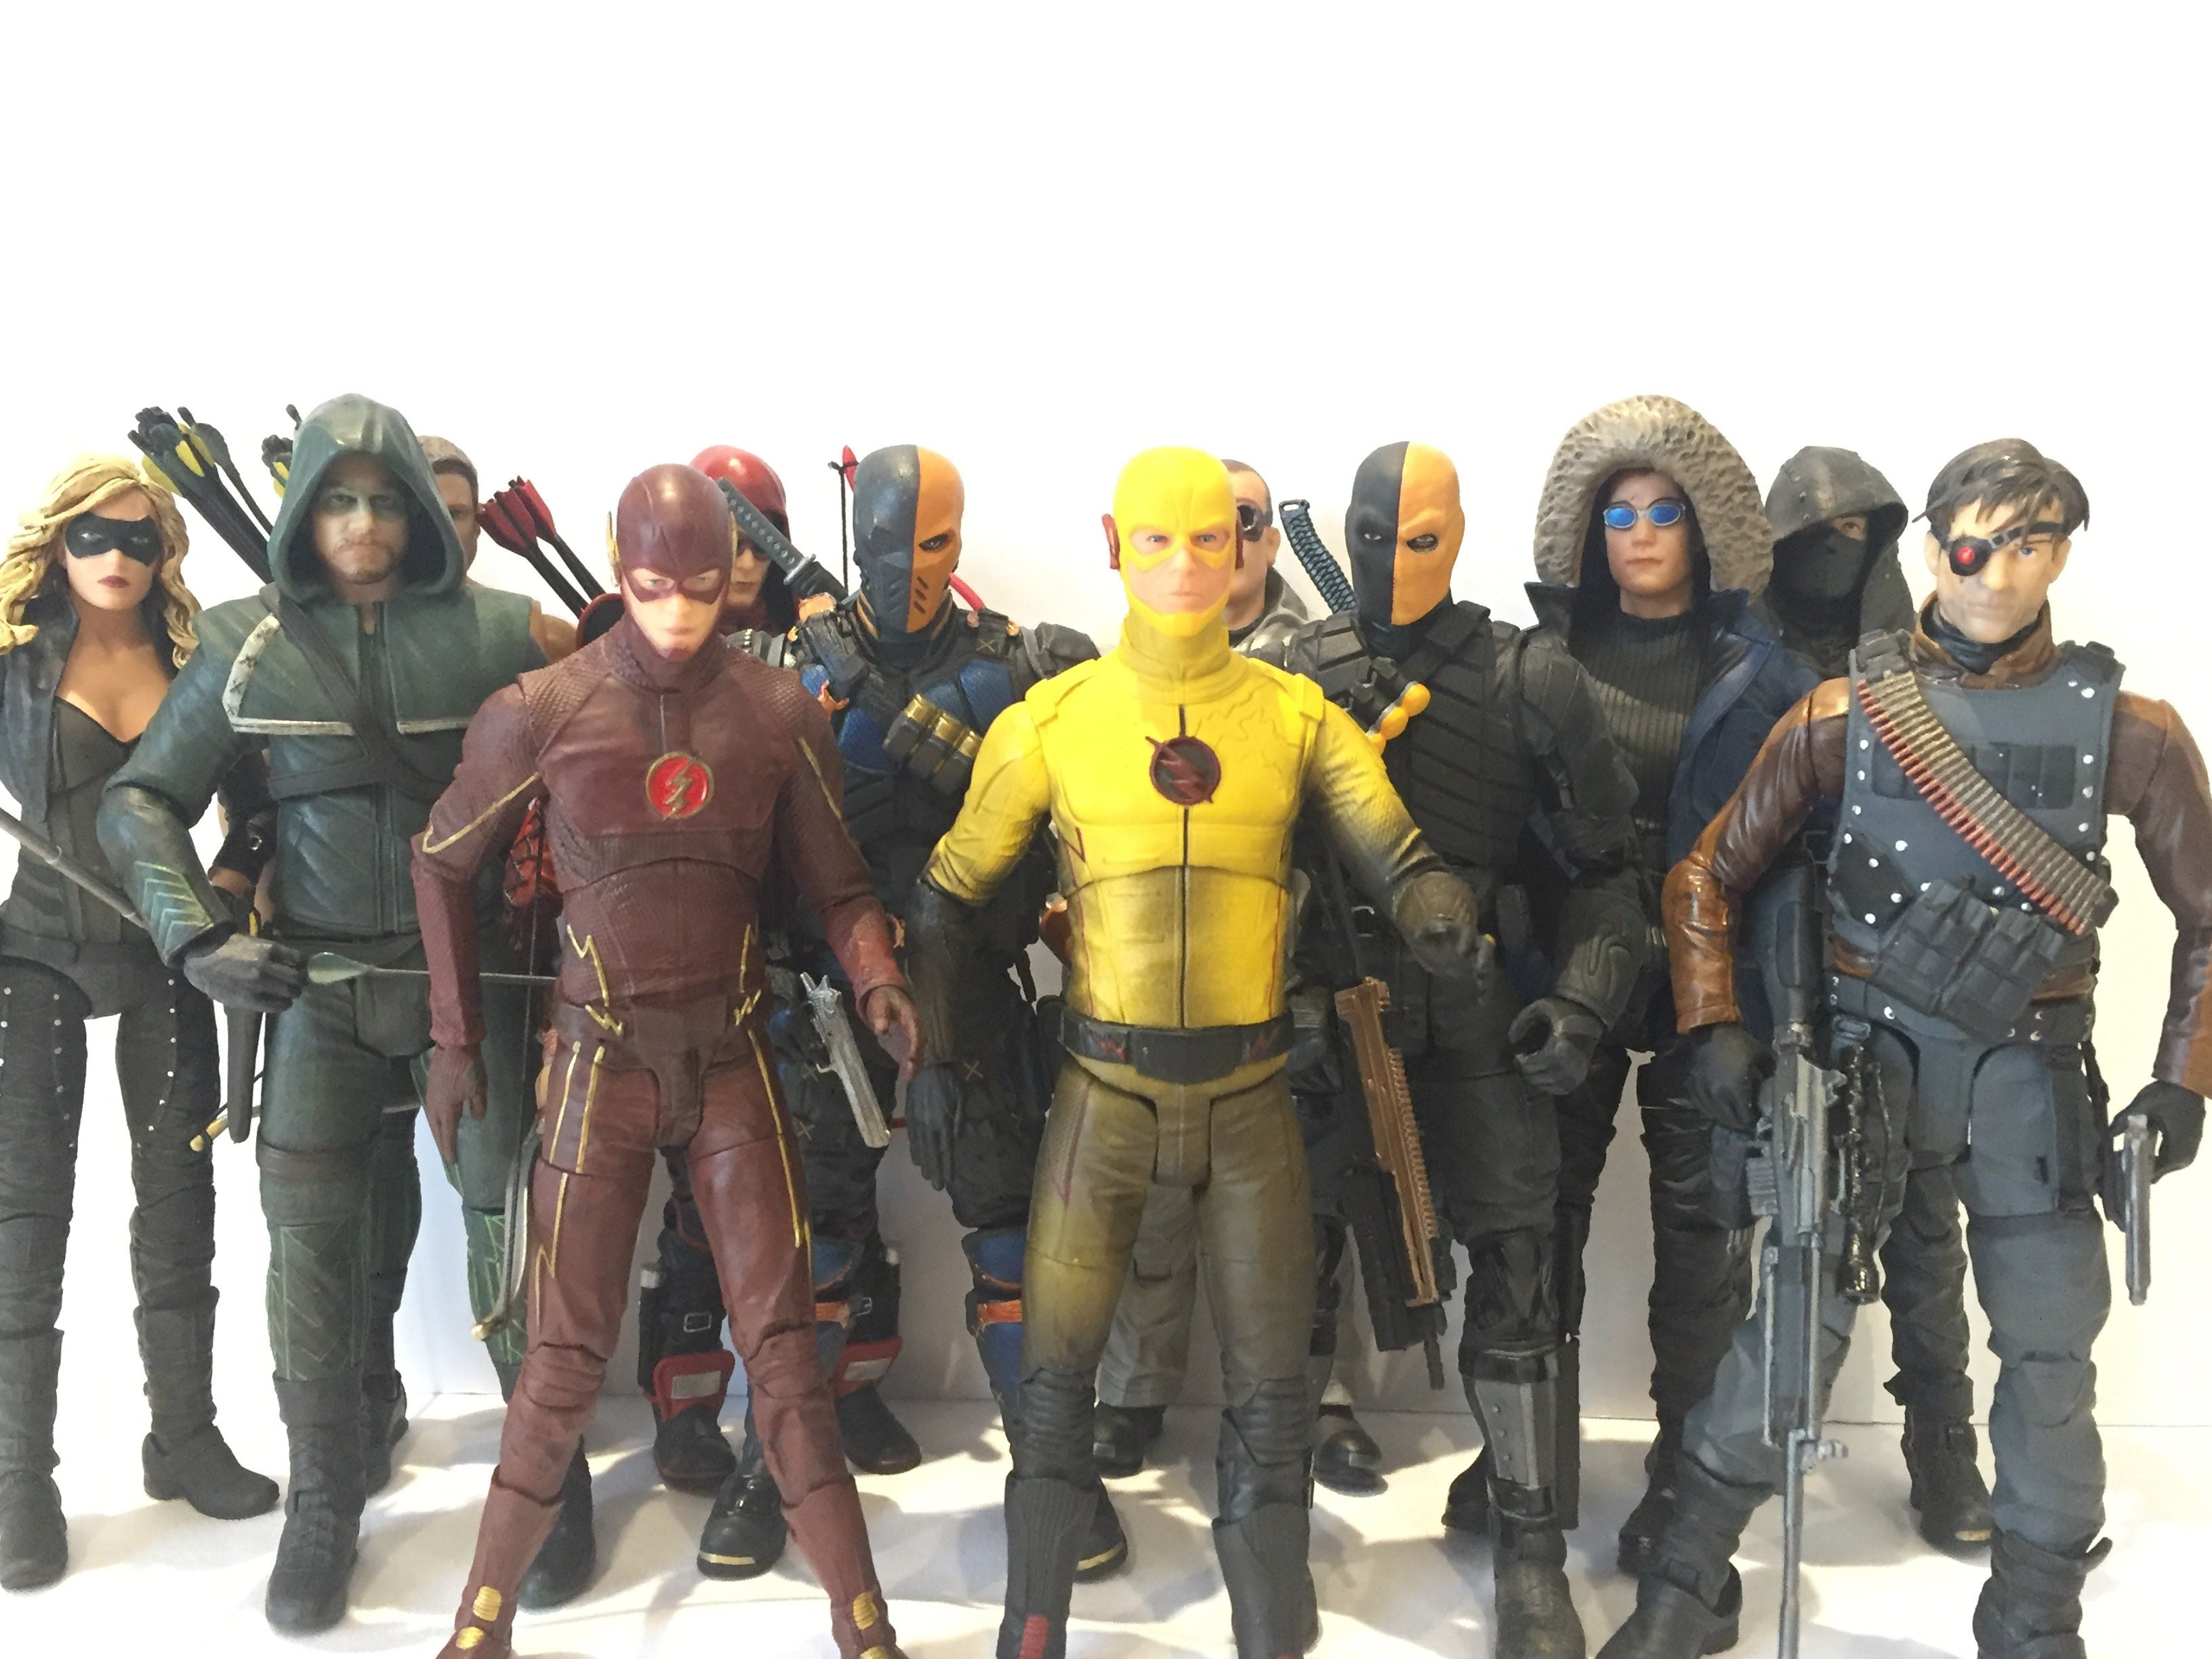 The flash season 2 recap and review the reverse flash returns - Dc Collectibles Reverse Flash Cw Show Figure Review Arrow Flash